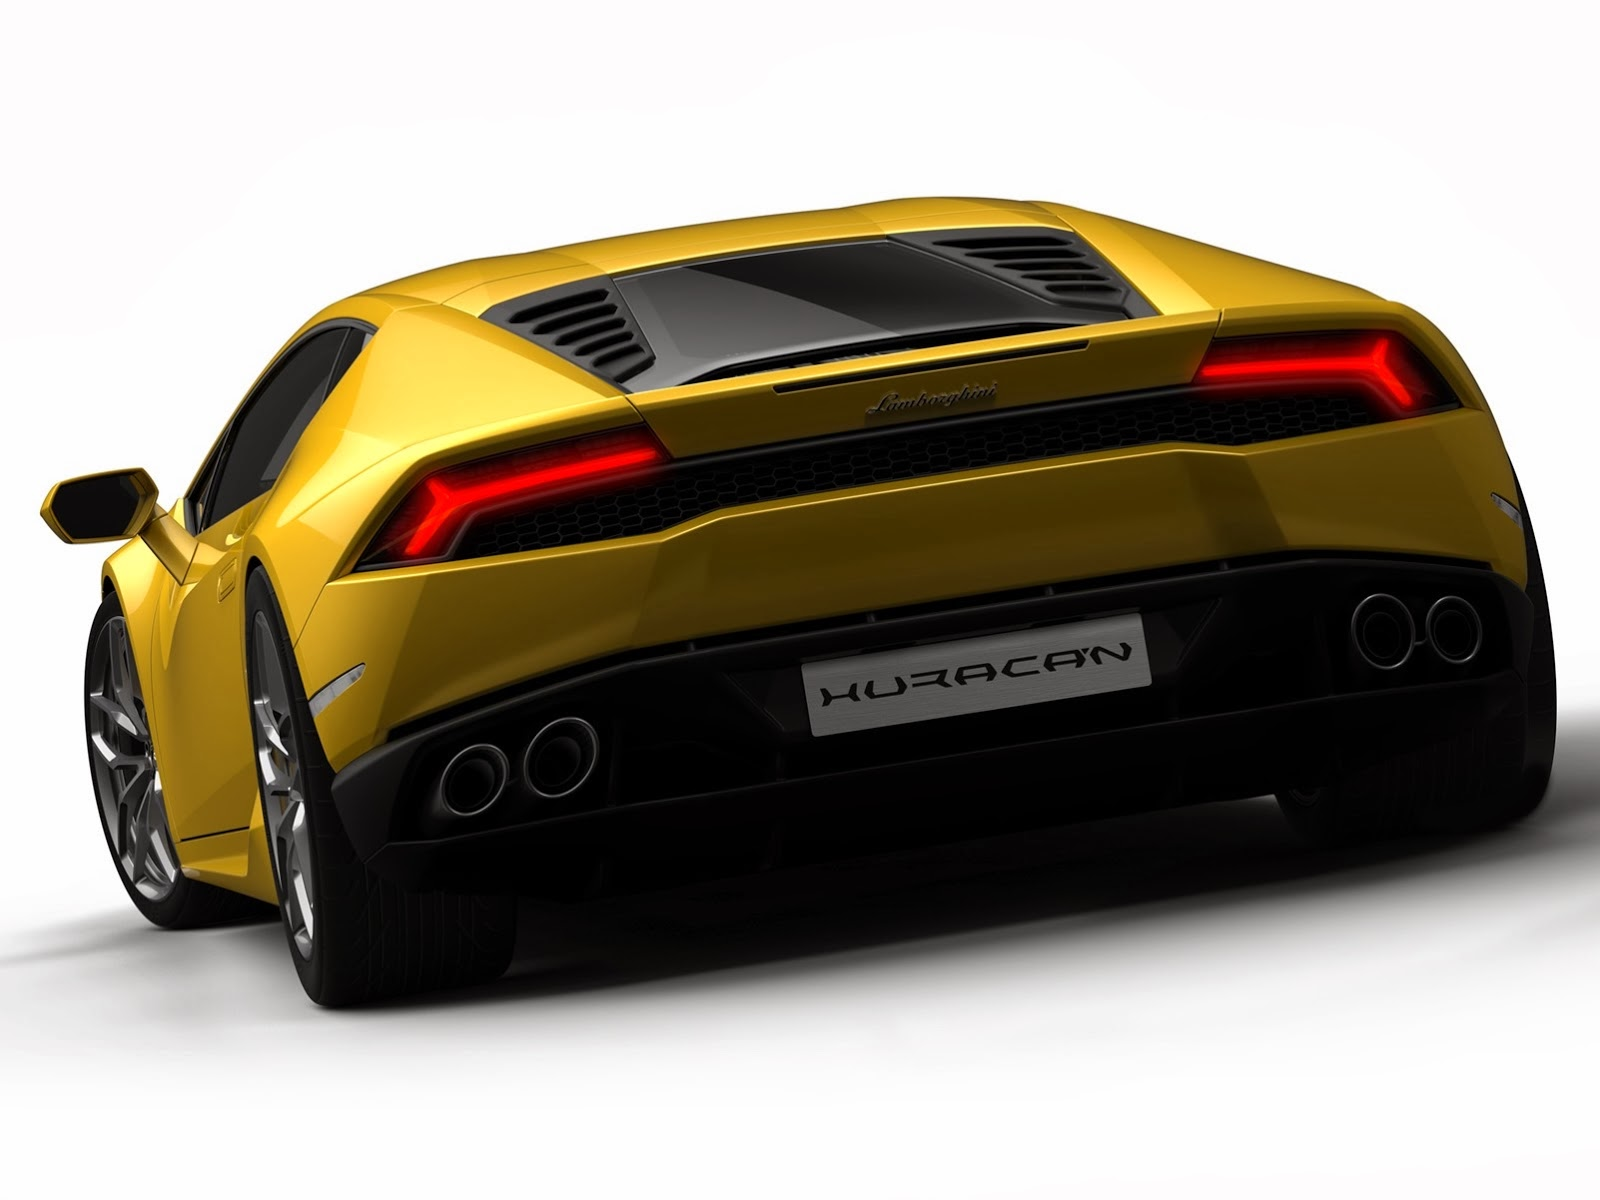 Lamborghini Huracan iPad Wallpaper